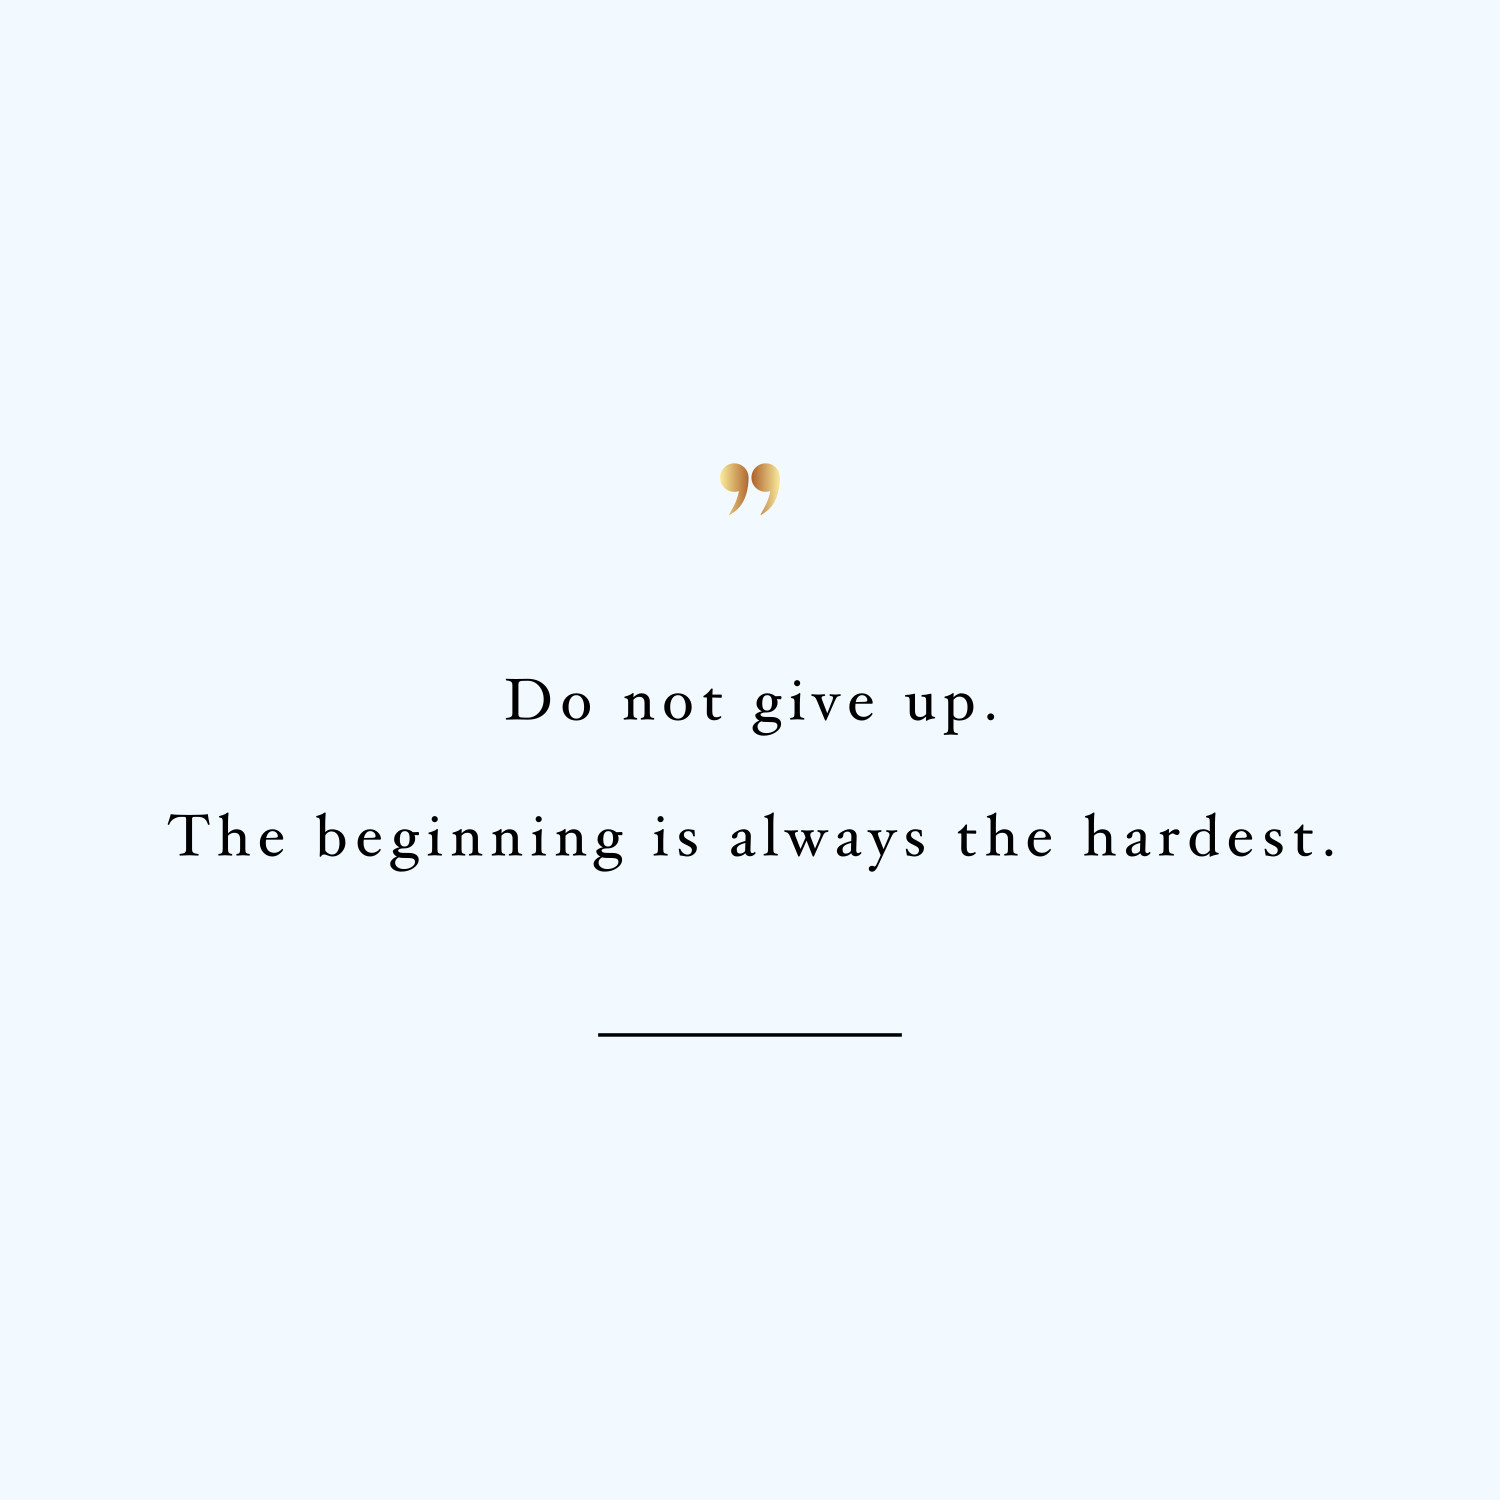 The beginning is the hardest! Browse our collection of inspirational training quotes and get instant exercise and weight loss motivation. Transform positive thoughts into positive actions and get fit, healthy and happy! https://www.spotebi.com/workout-motivation/beginning-is-hardest-inspirational-training-quote/